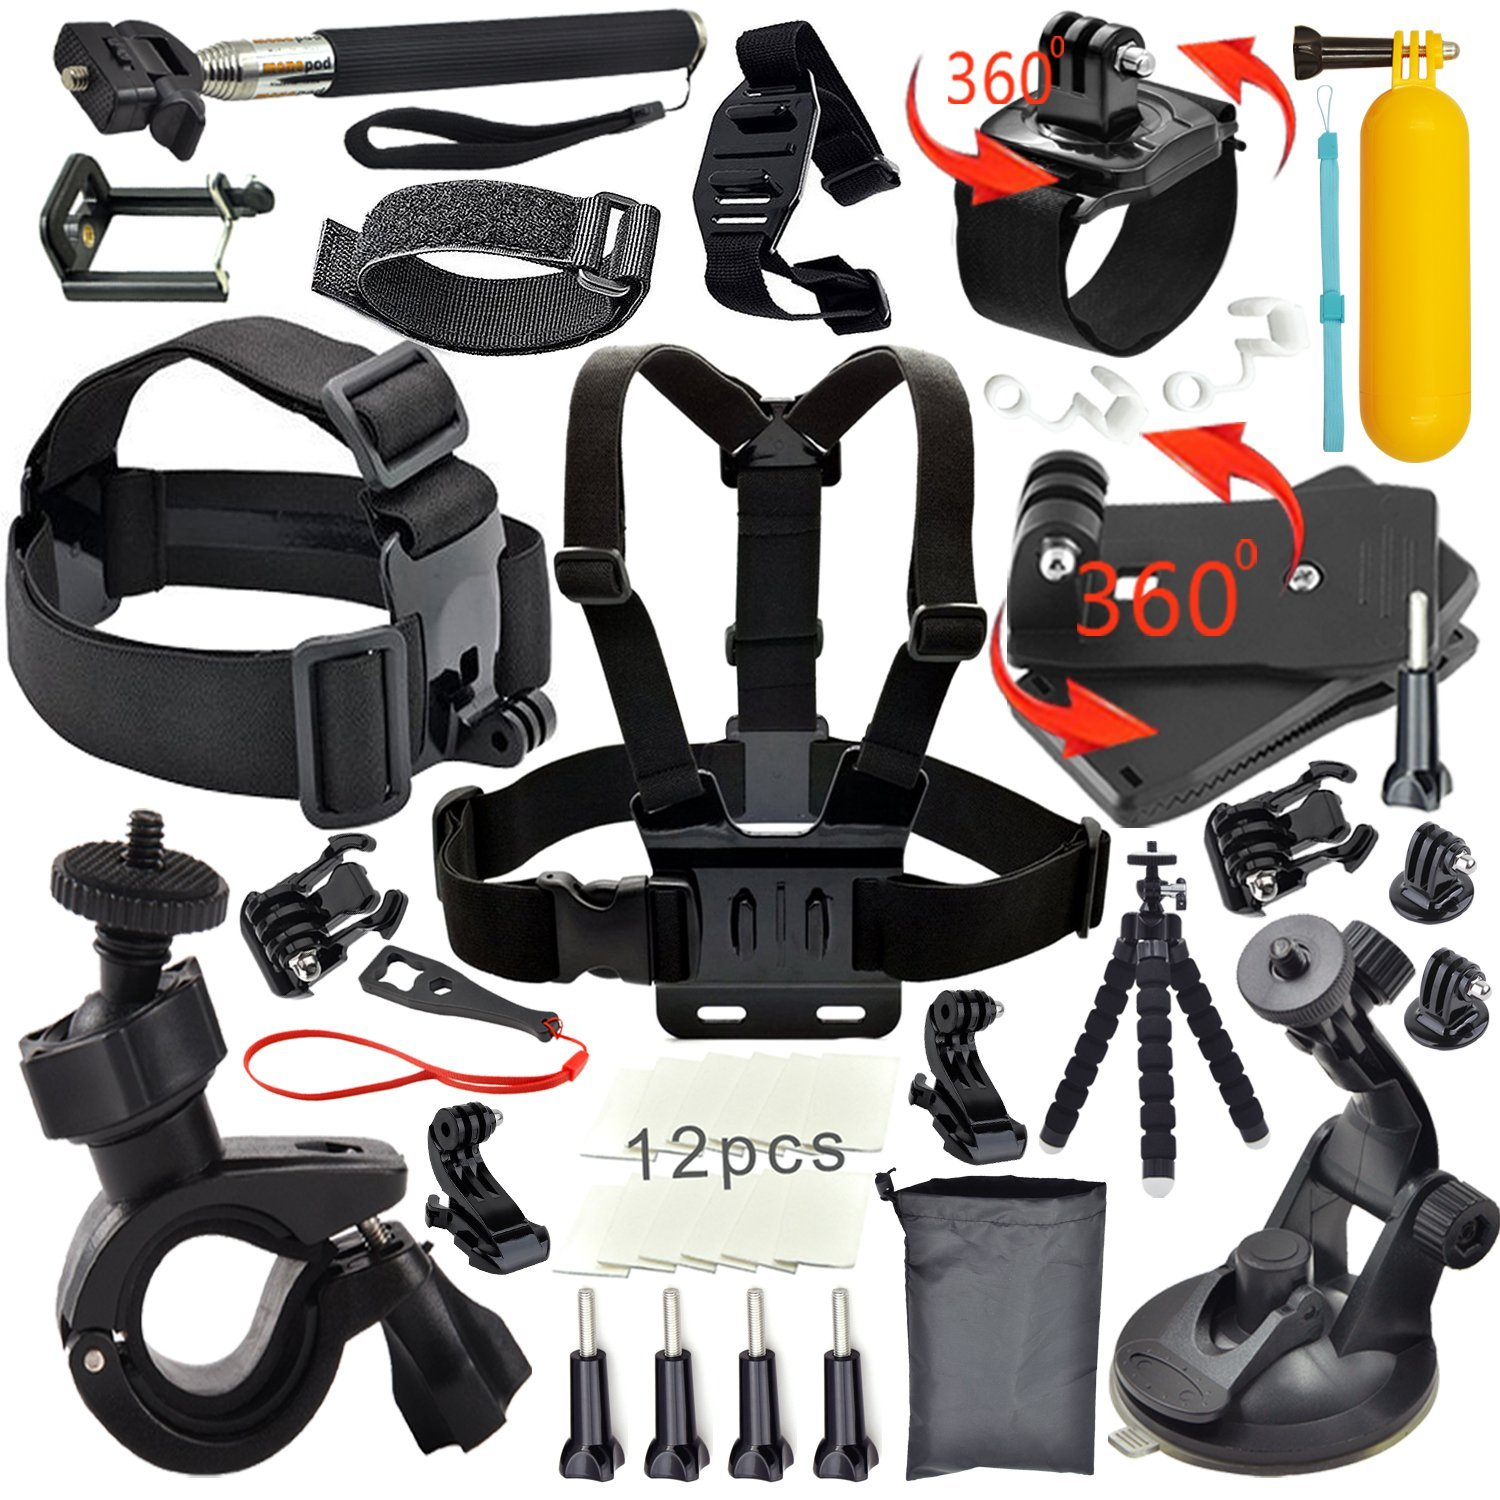 FeoconT Outdoor Sports Essentials Kit for GoPro Hero 4 Silver Black Hero 4 3 3 2